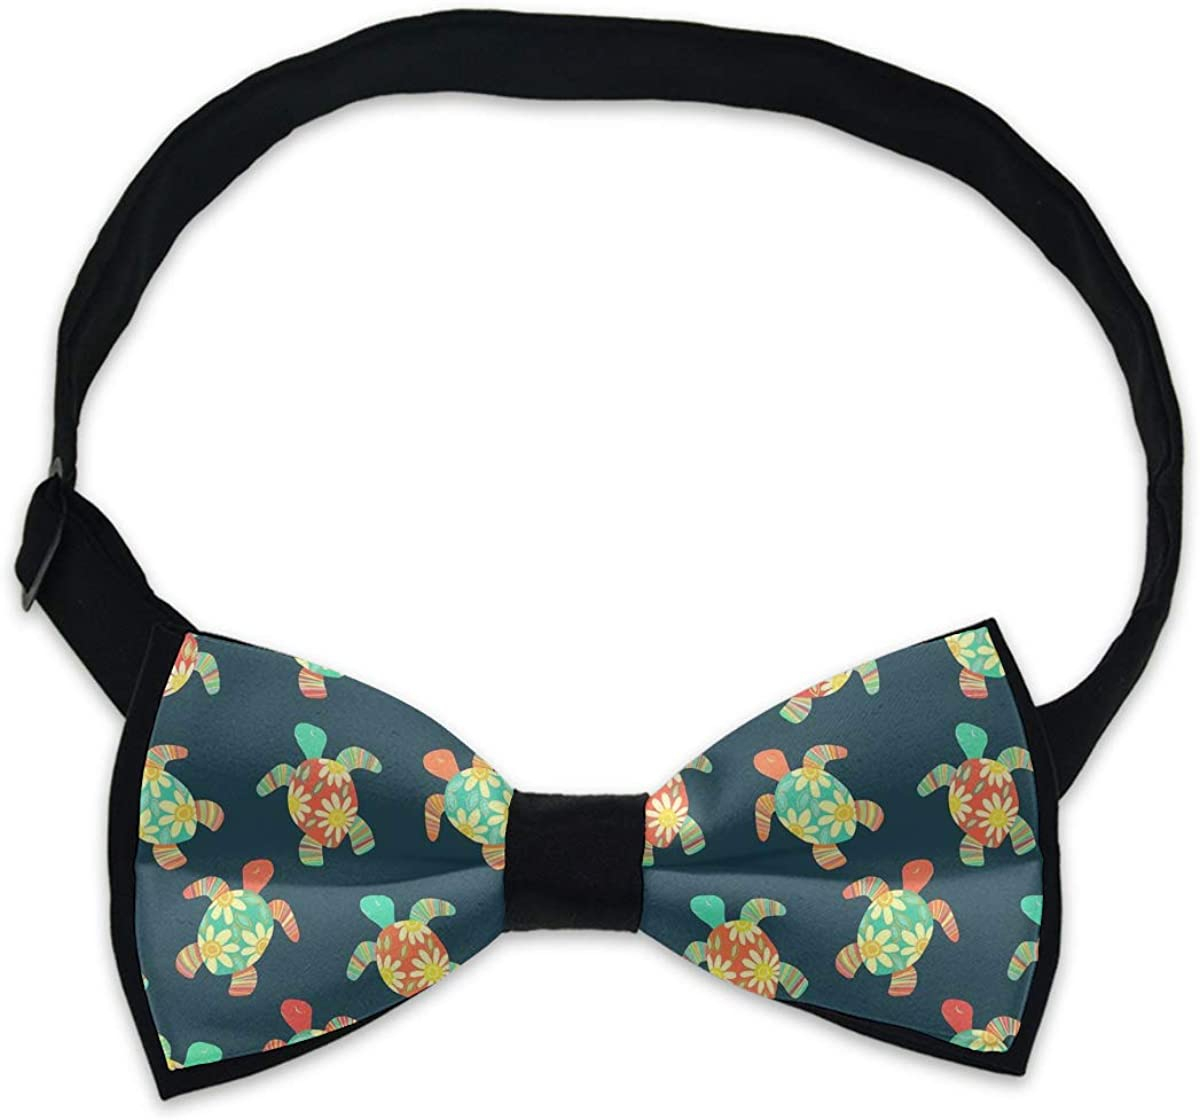 Casual 3D Printed Bowtie for Mens Boys, Formal Events, School Party